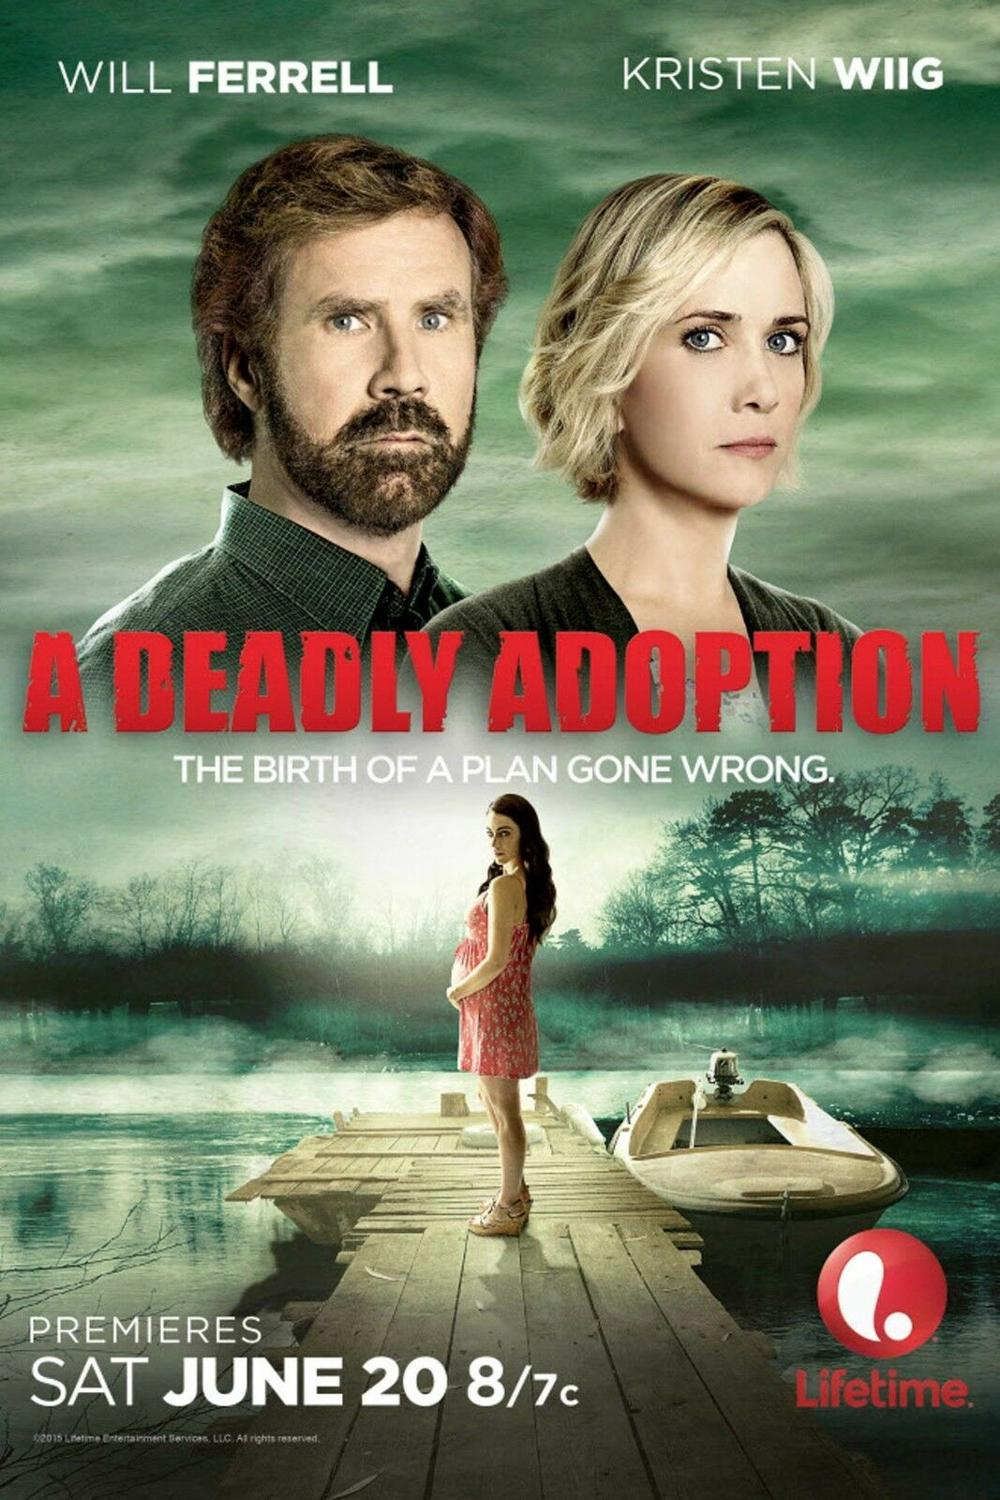 N1709 A DEADLY ADOPTION Movie Will Ferrell Kristen Wiig 2015 Wall Sticker Silk Fabric Poster Art Indoor Decor Bright image